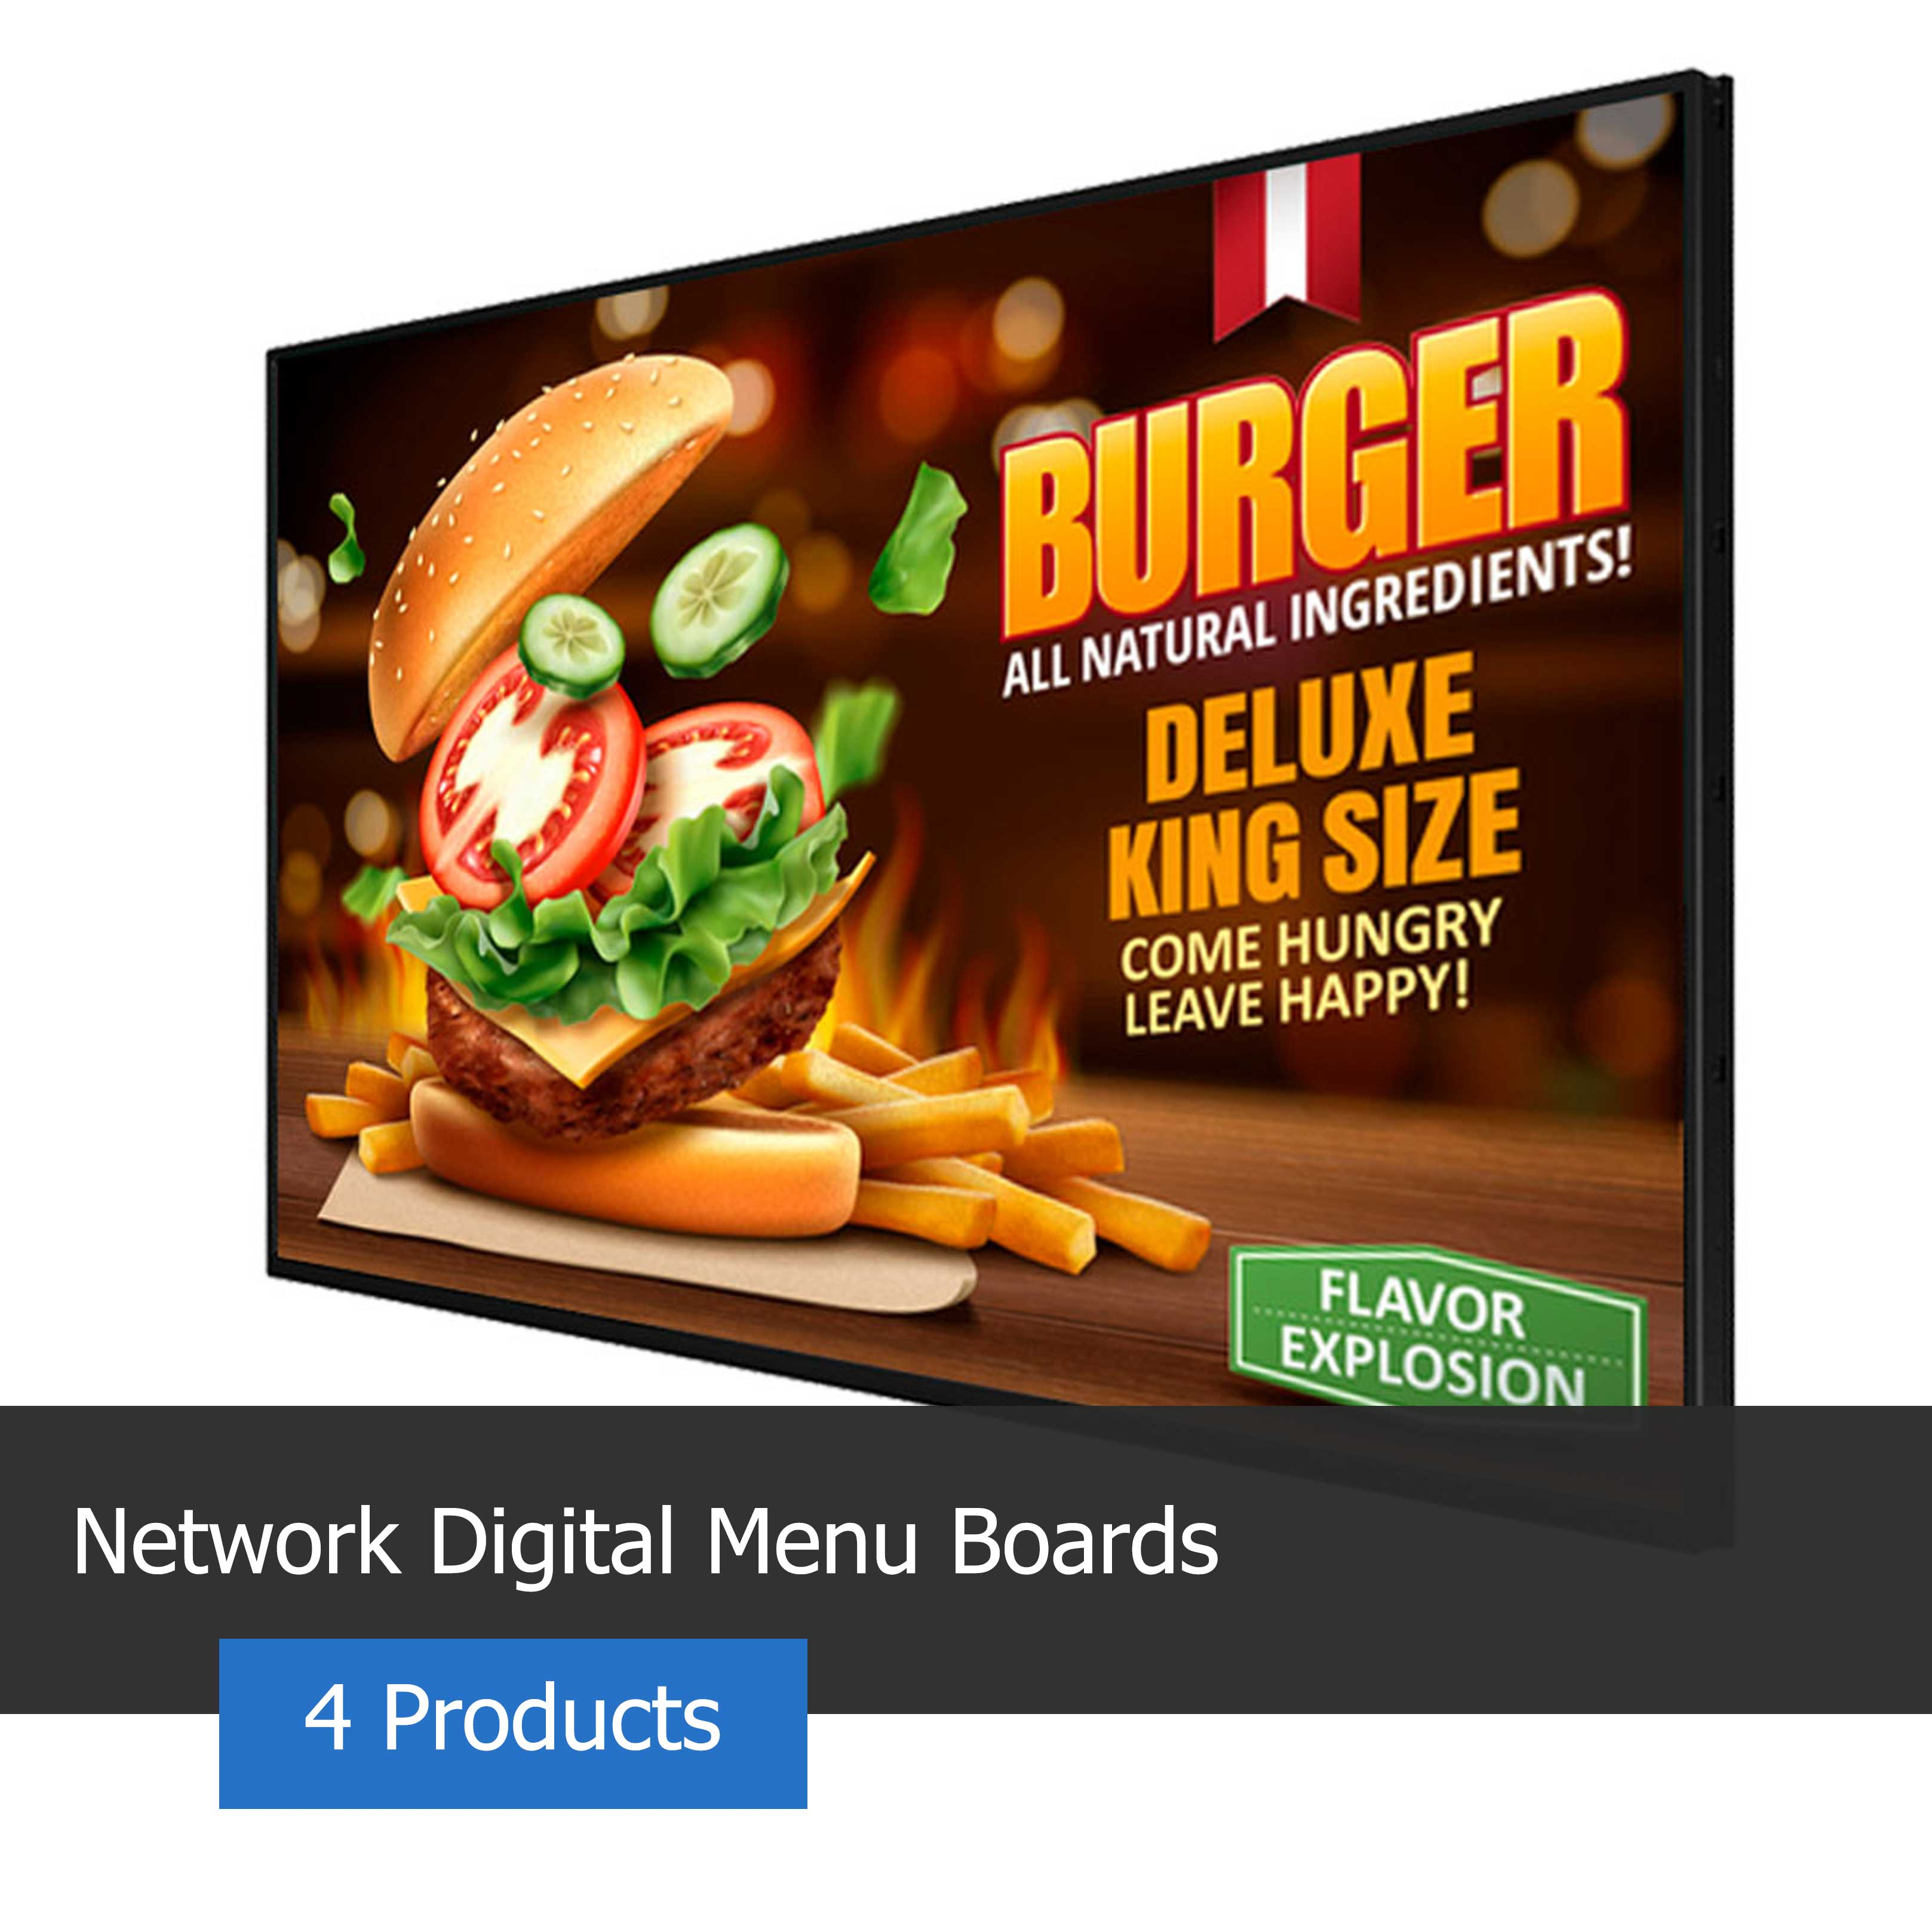 Image of a networked digital menu board